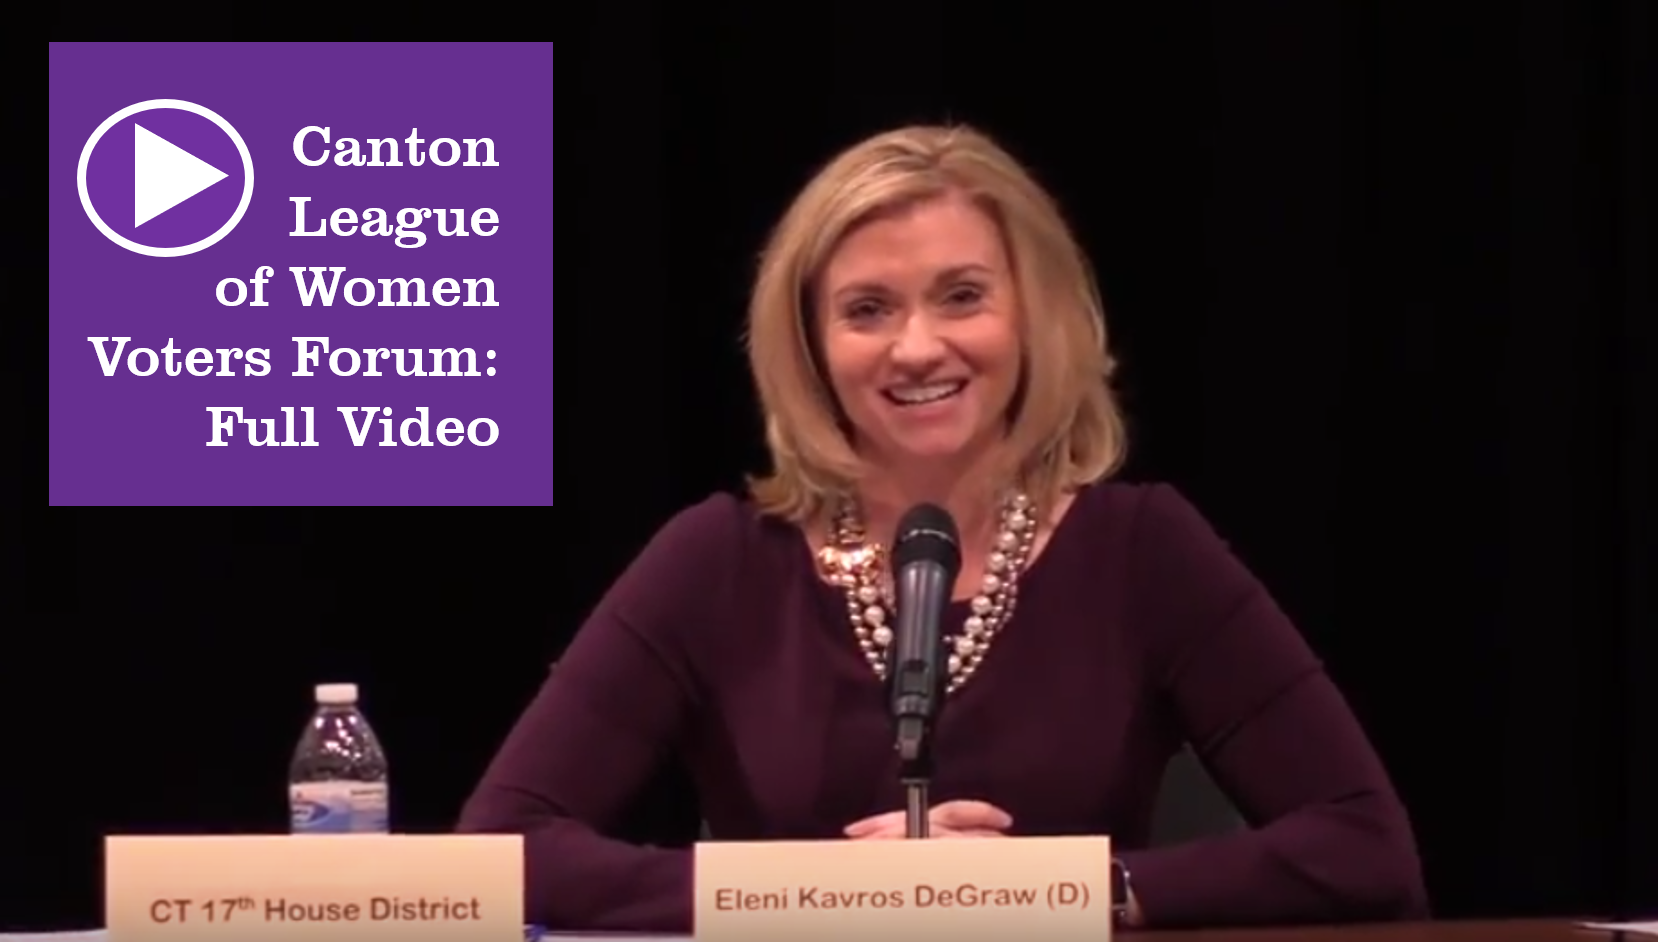 Full Video: League of Women Voters Canton Forum - Watch Eleni Kavros DeGraw and other candidates share their platforms and their qualifications at the October 16 forum. WATCH VIDEO …